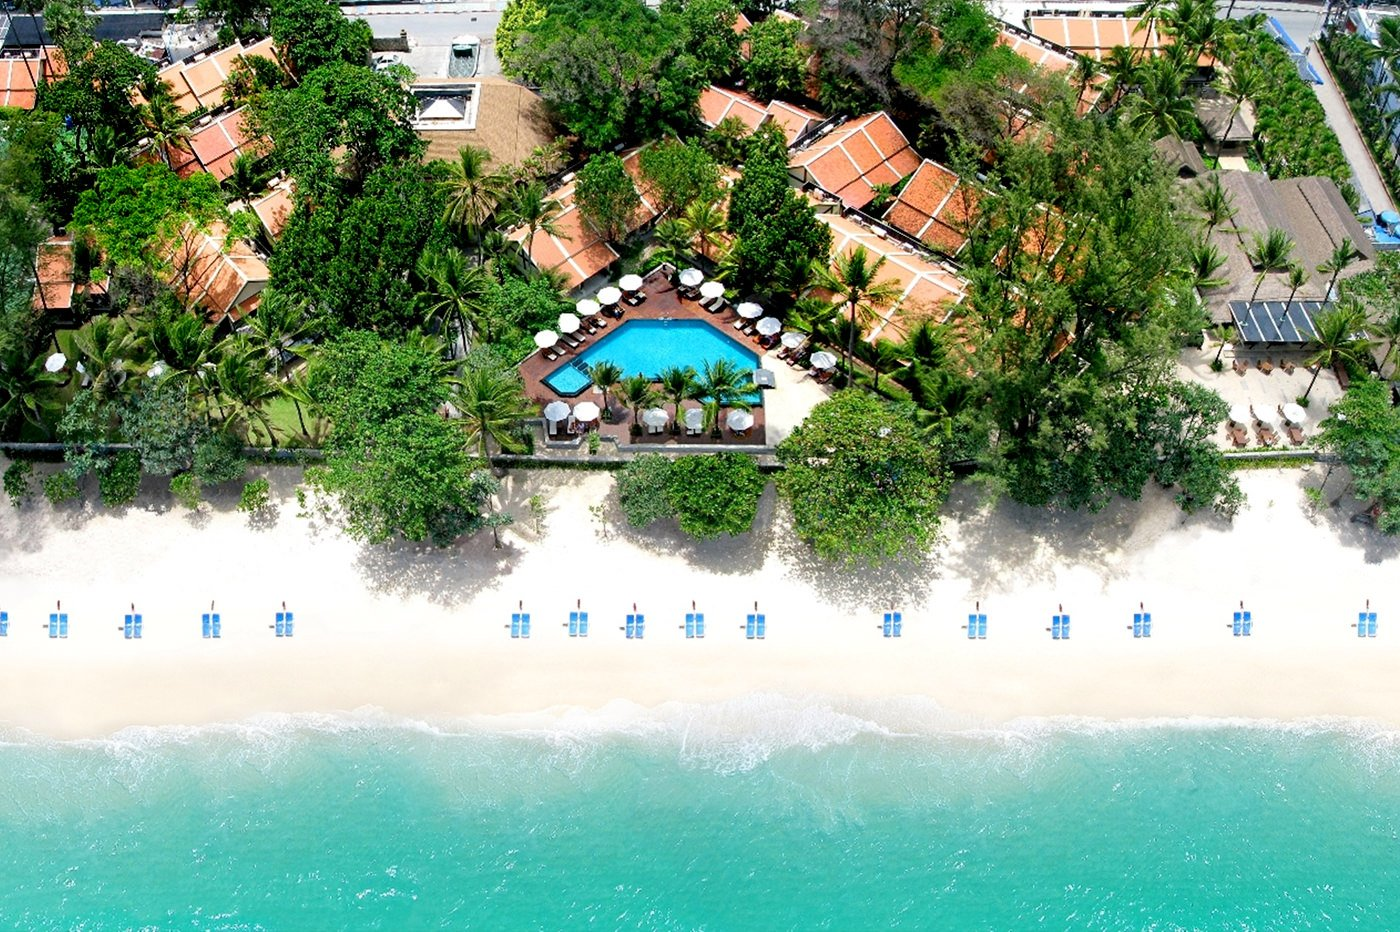 Patong Beach Hotels How To Chose The Right Hotel In